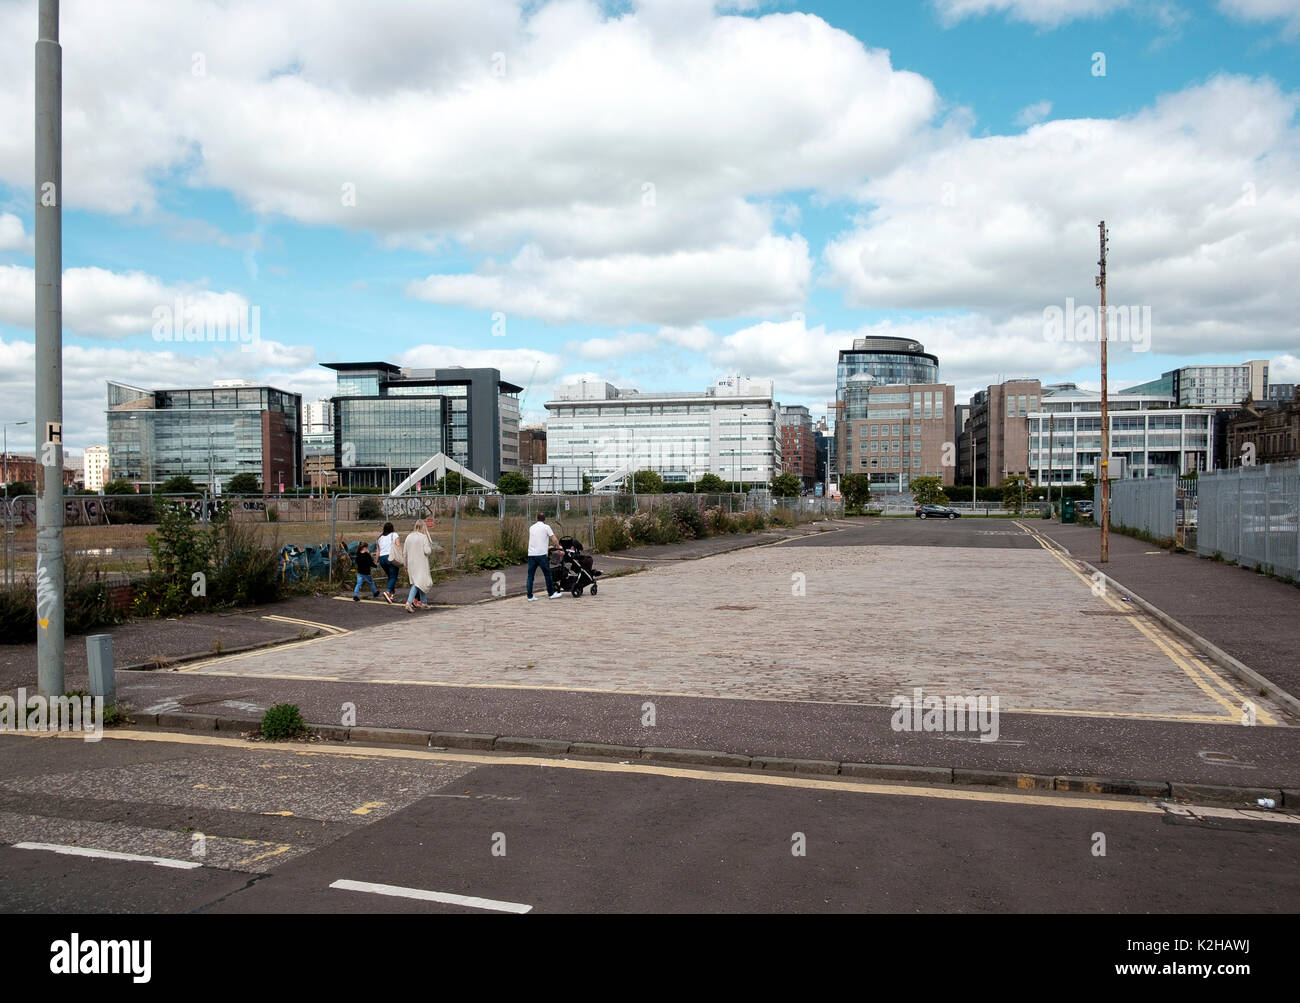 Undeveloped land besides the River Clyde on Tradeston Street in the run down area of Kingston Glasgow - Stock Image